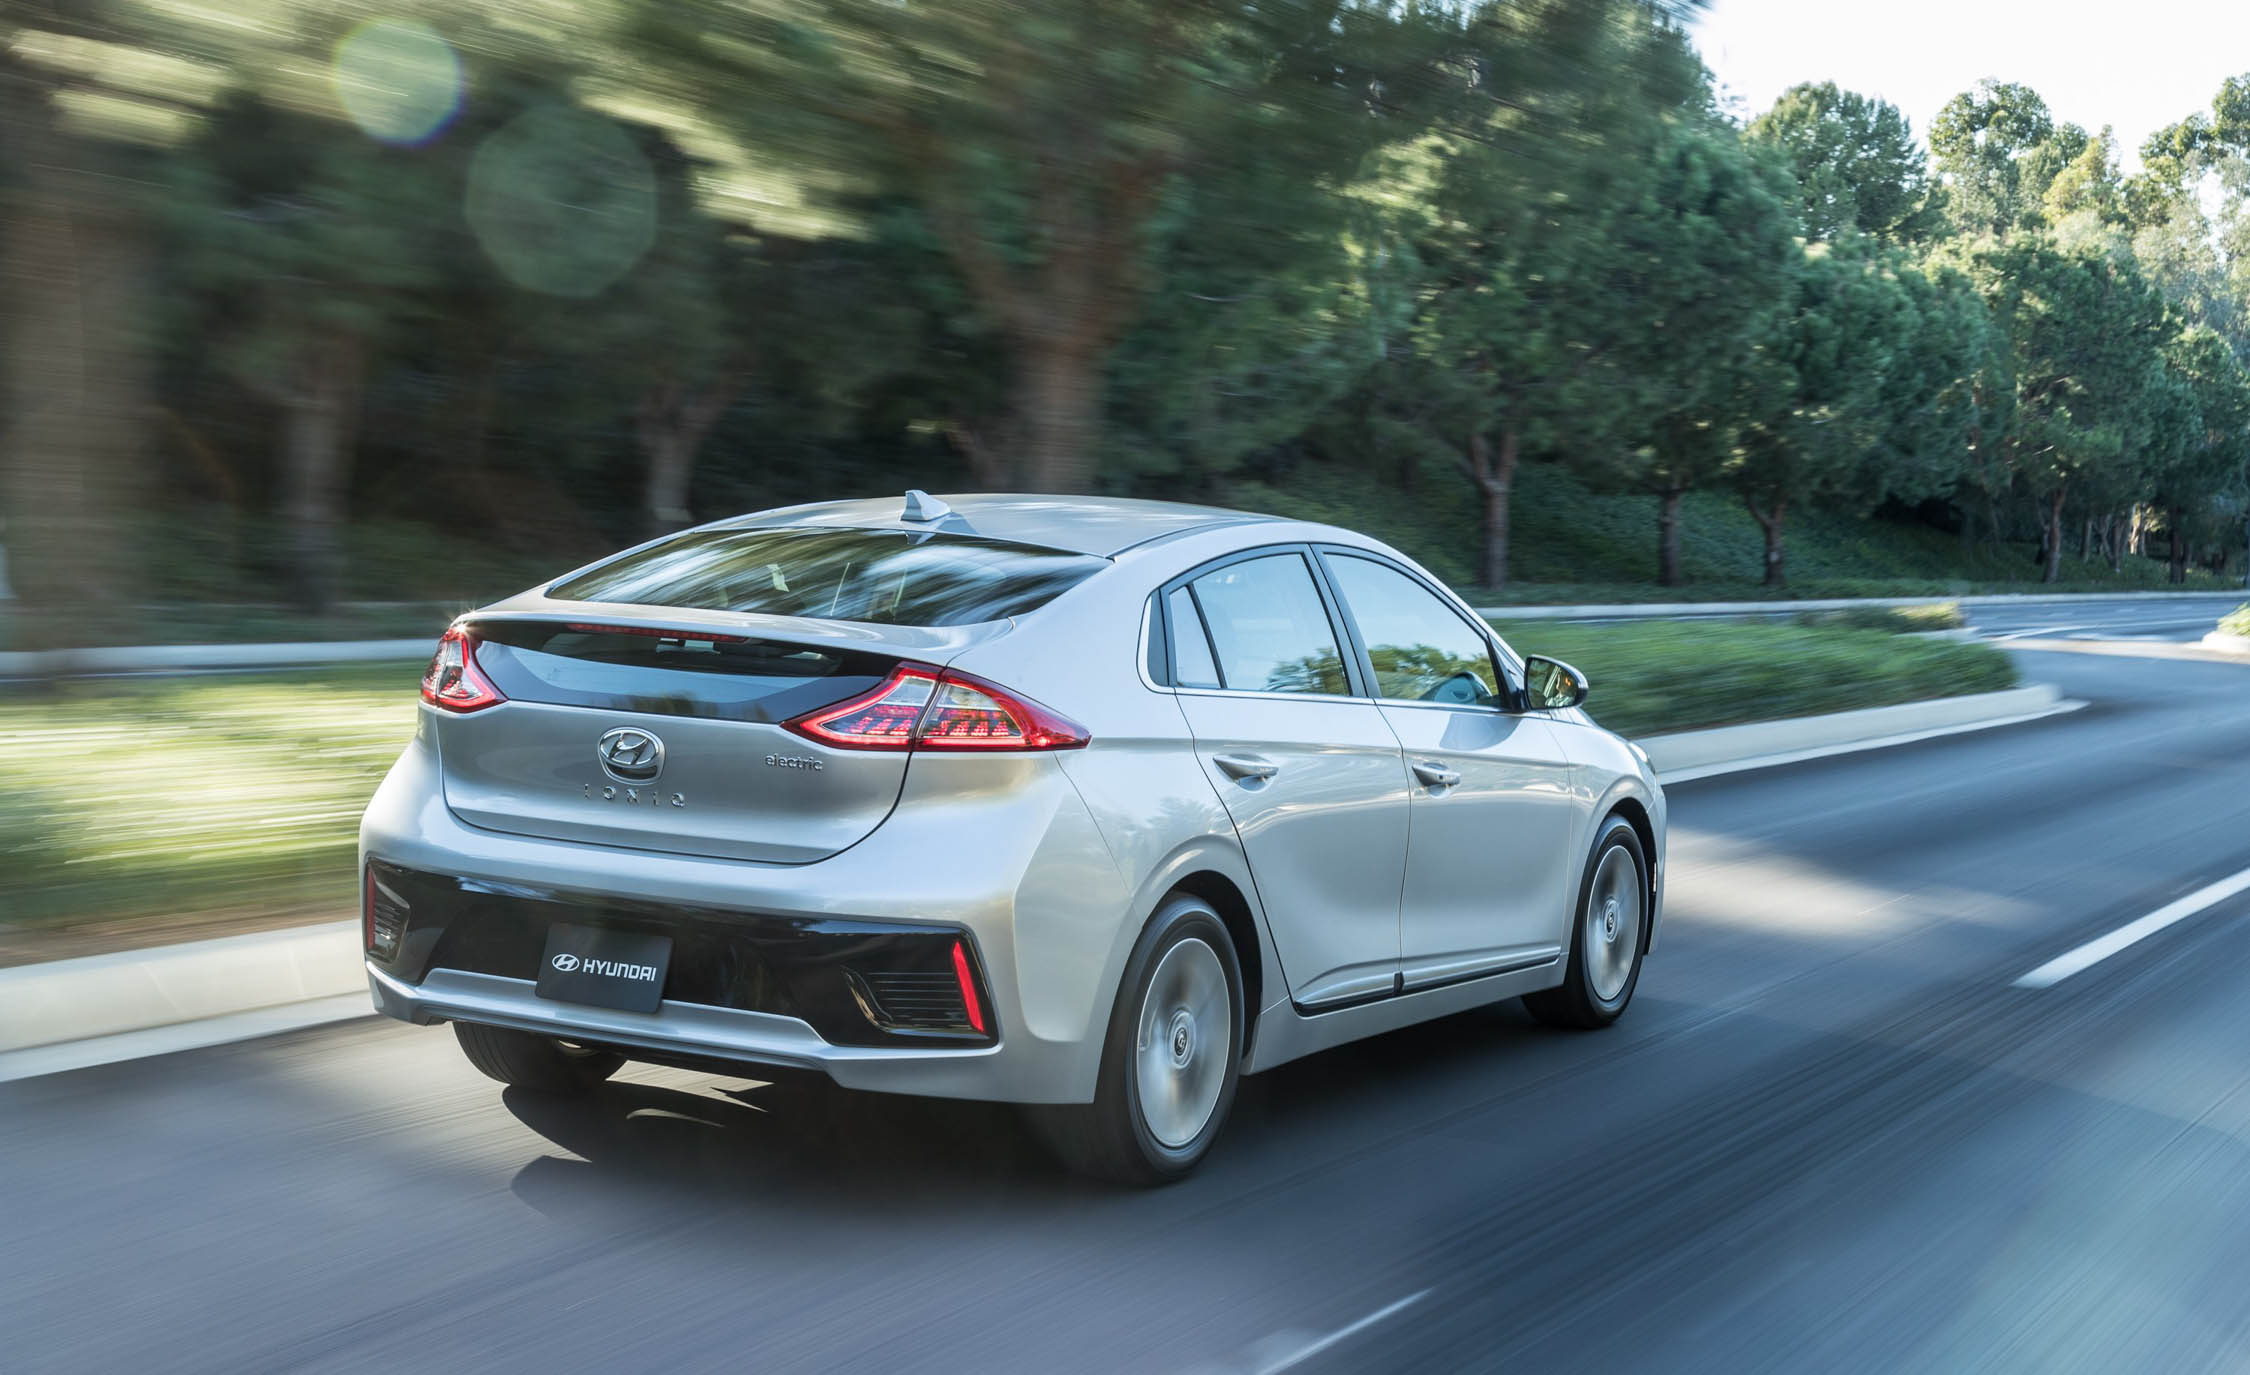 2017 Hyundai Ioniq Electric Test Drive Rear And Side View (Photo 32 of 67)